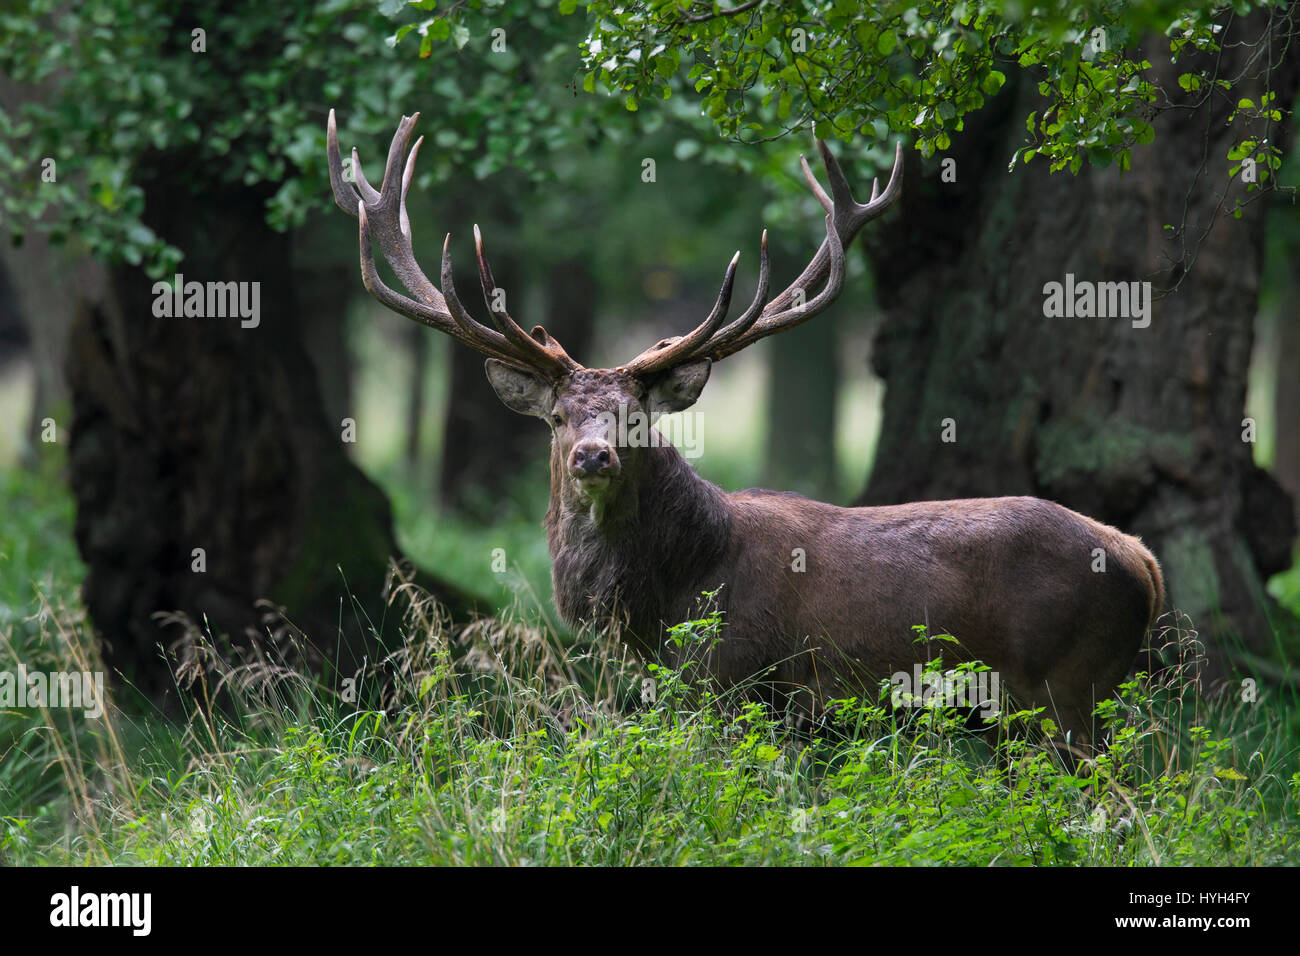 Red deer (Cervus elaphus) stag during the rutting season in beech forest - Stock Image